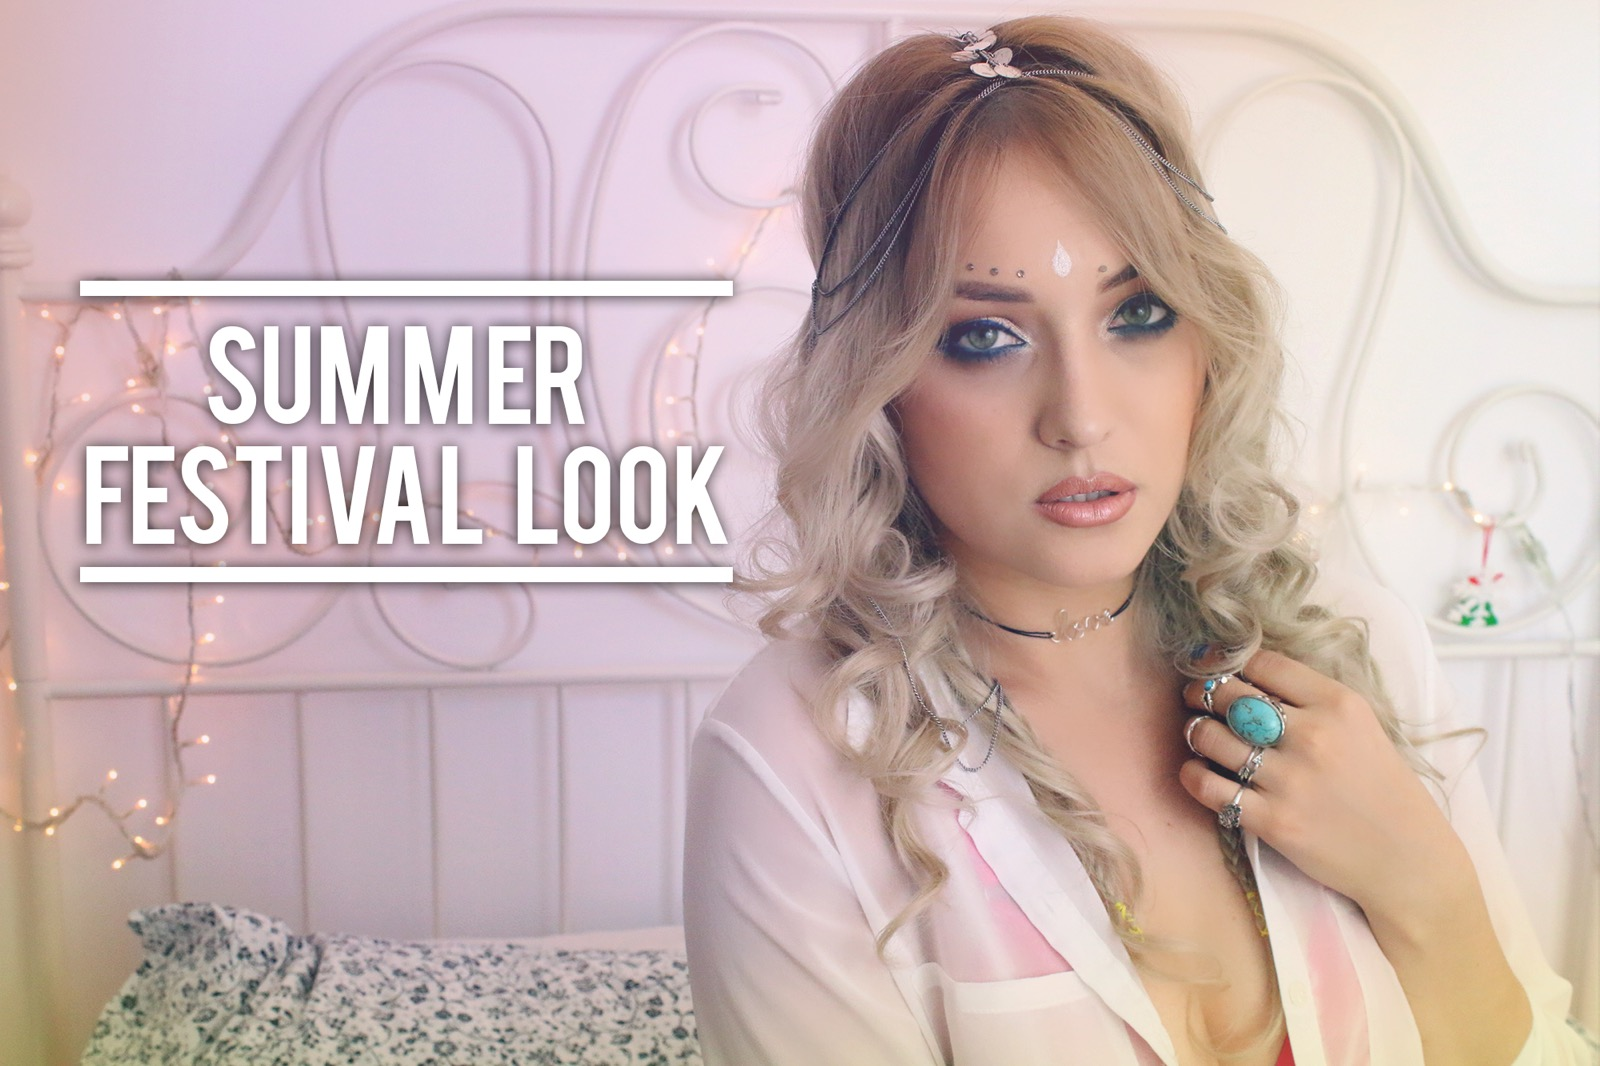 Summer Festival Look - Make-up, Hair & Outfit